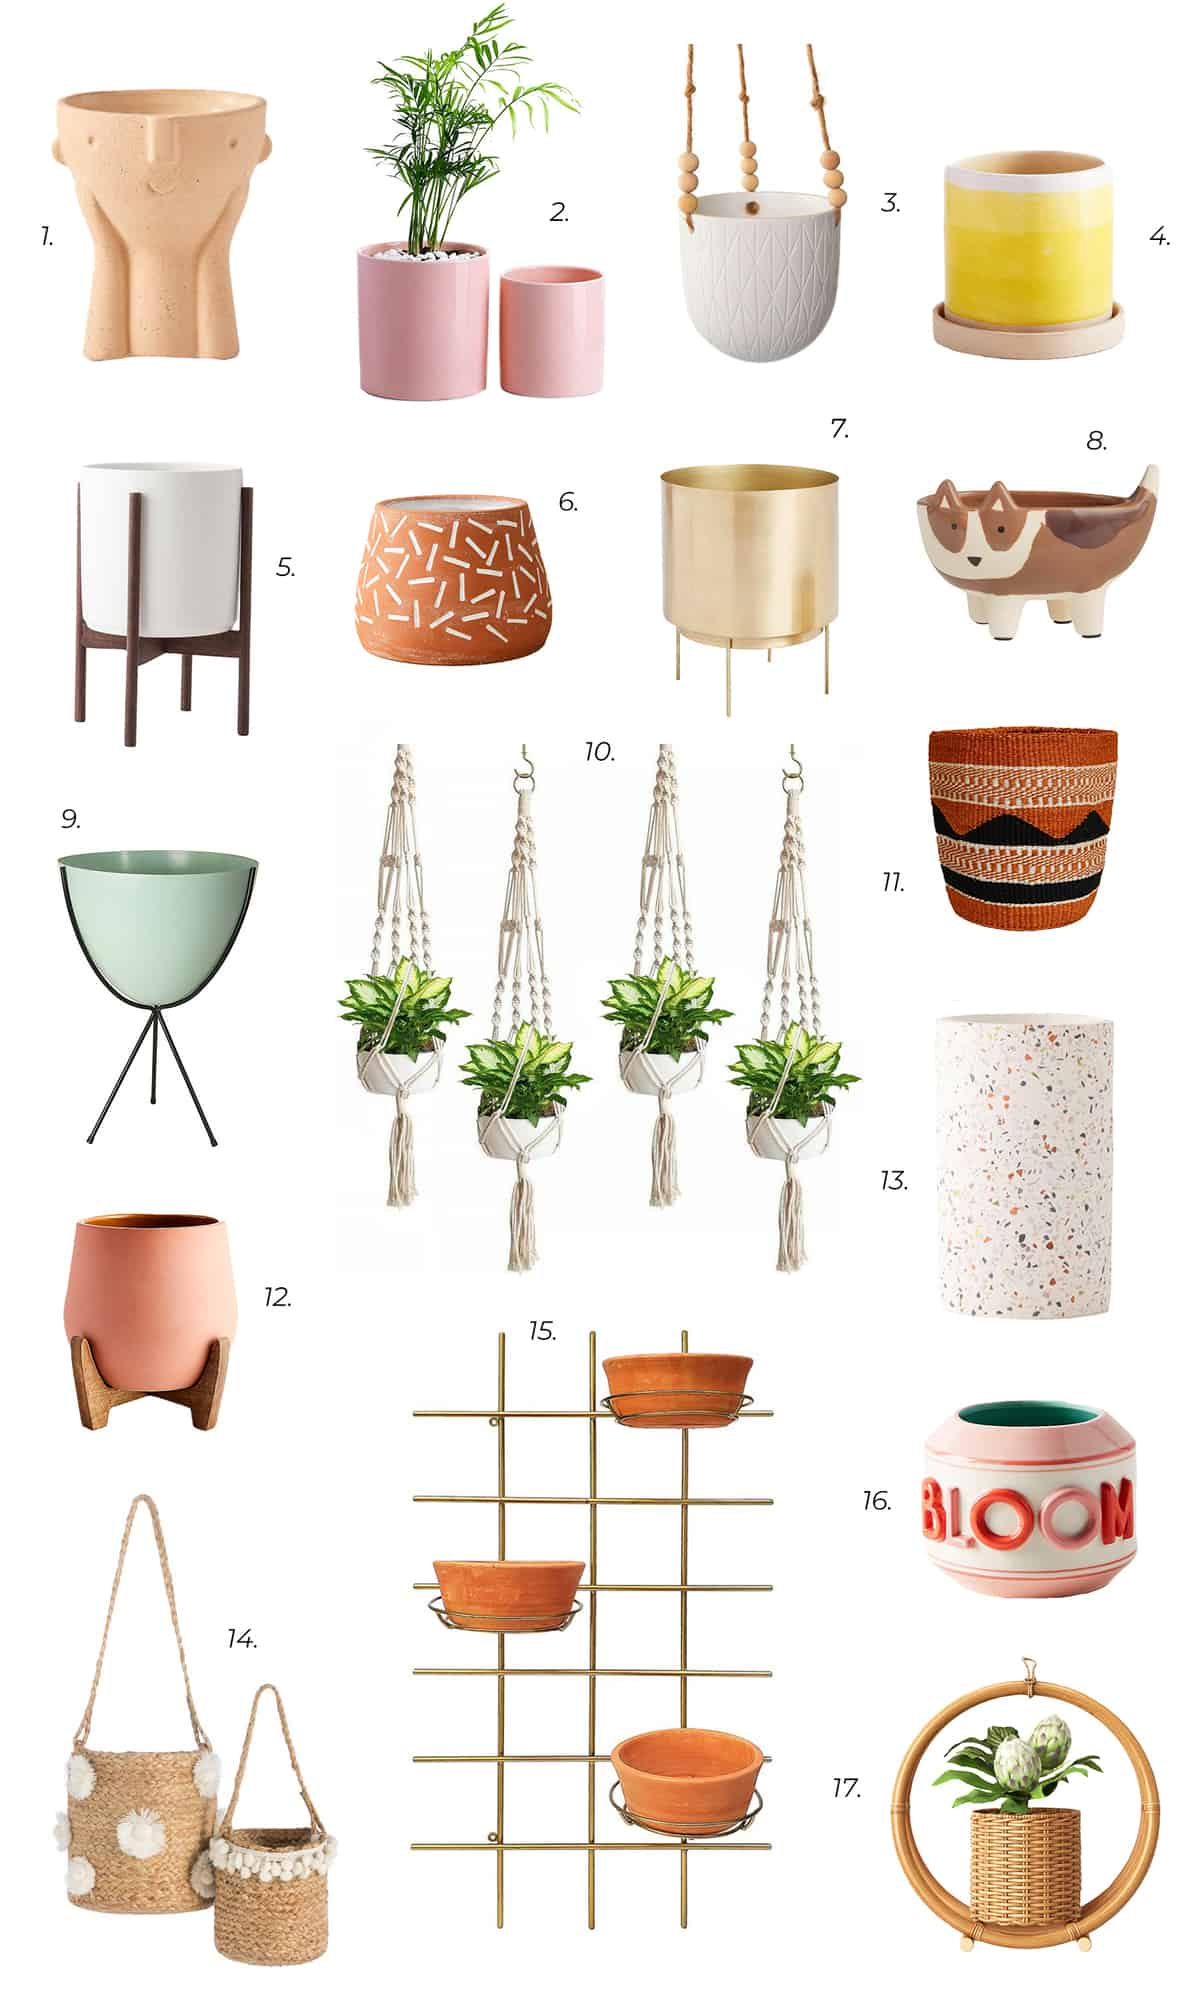 Our Favorite Pots and Planters